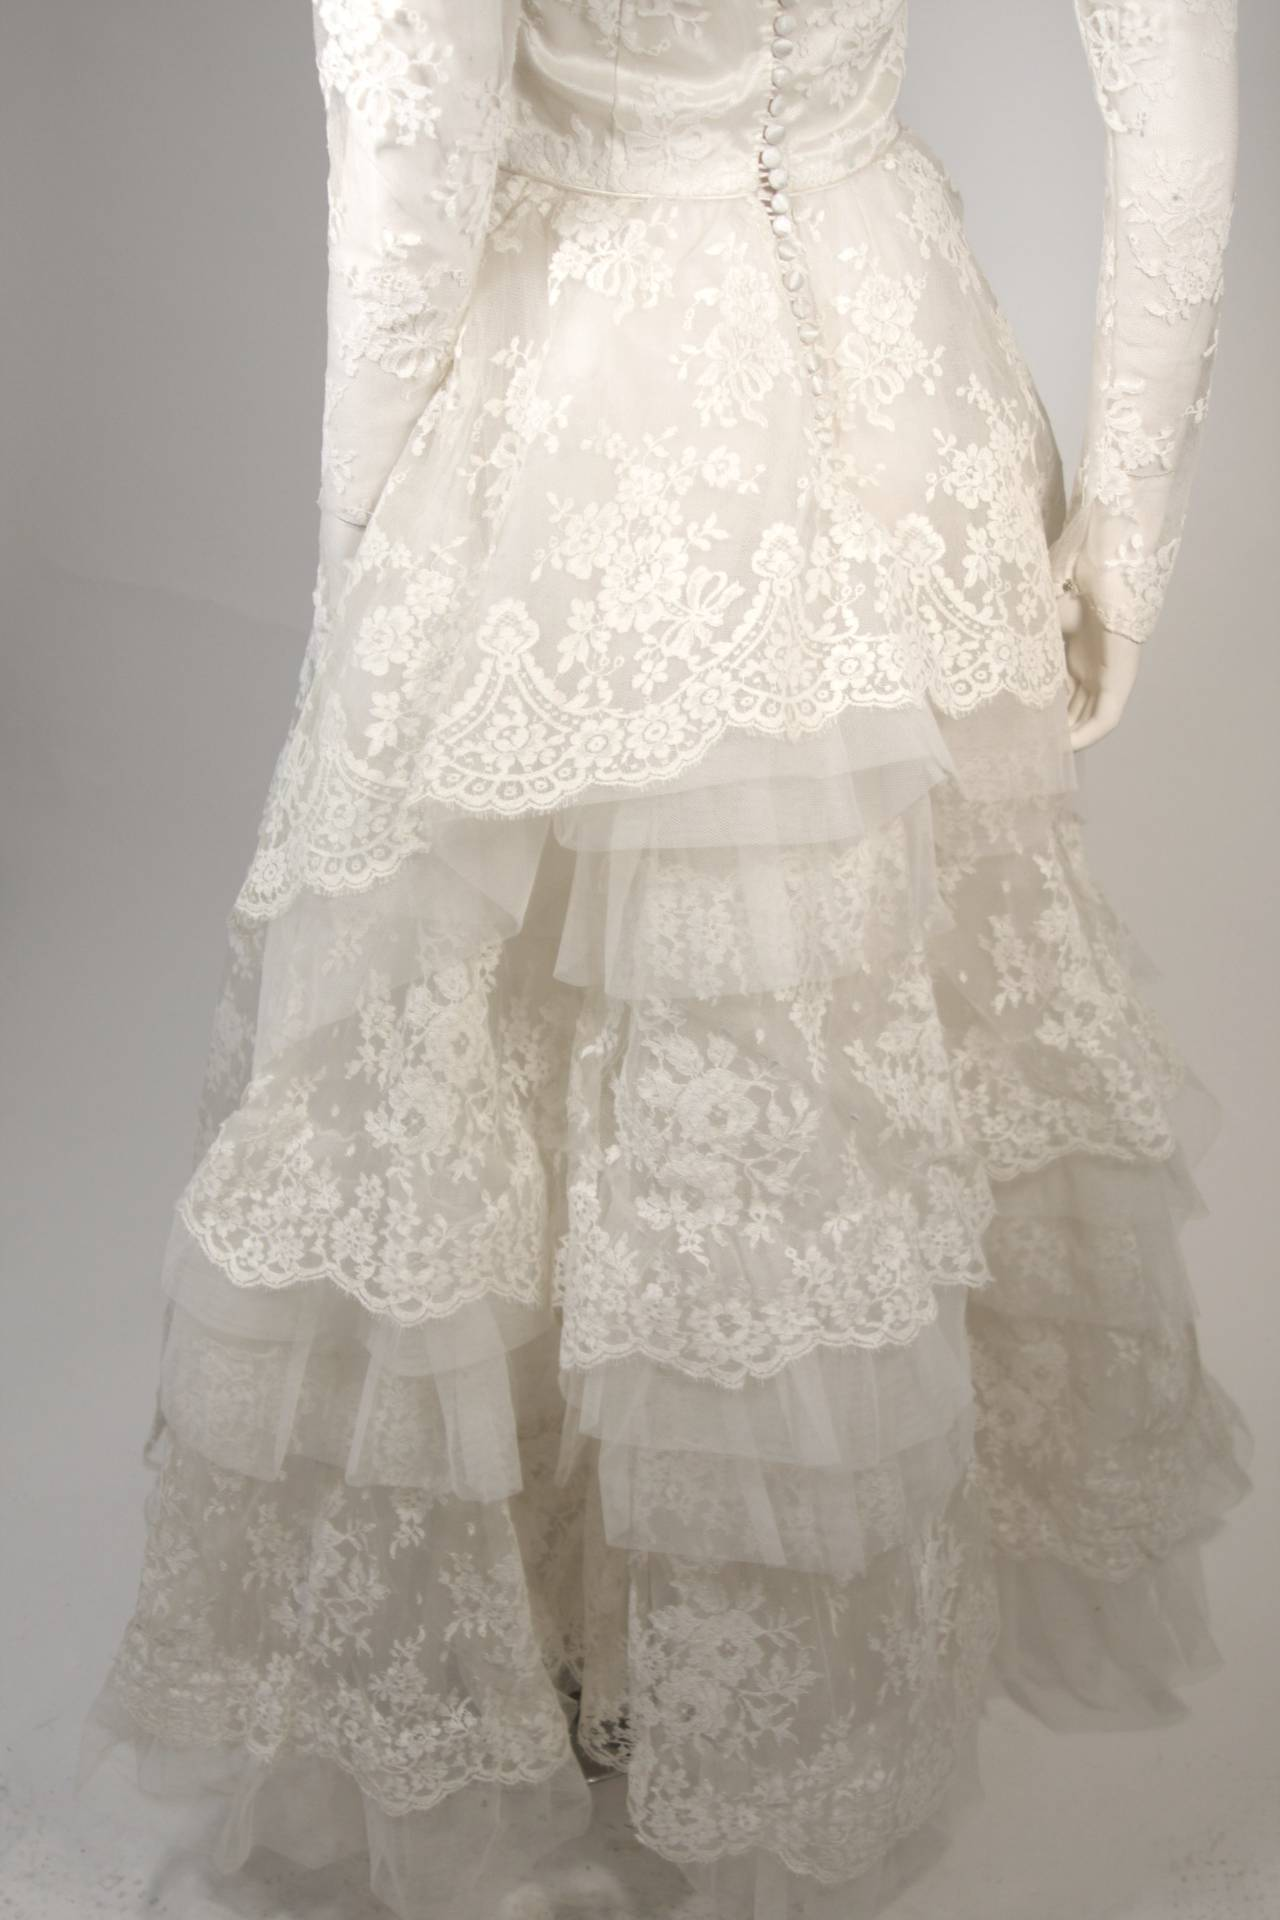 Vintage Lace Wedding Gown with Scalloped Edges and Long